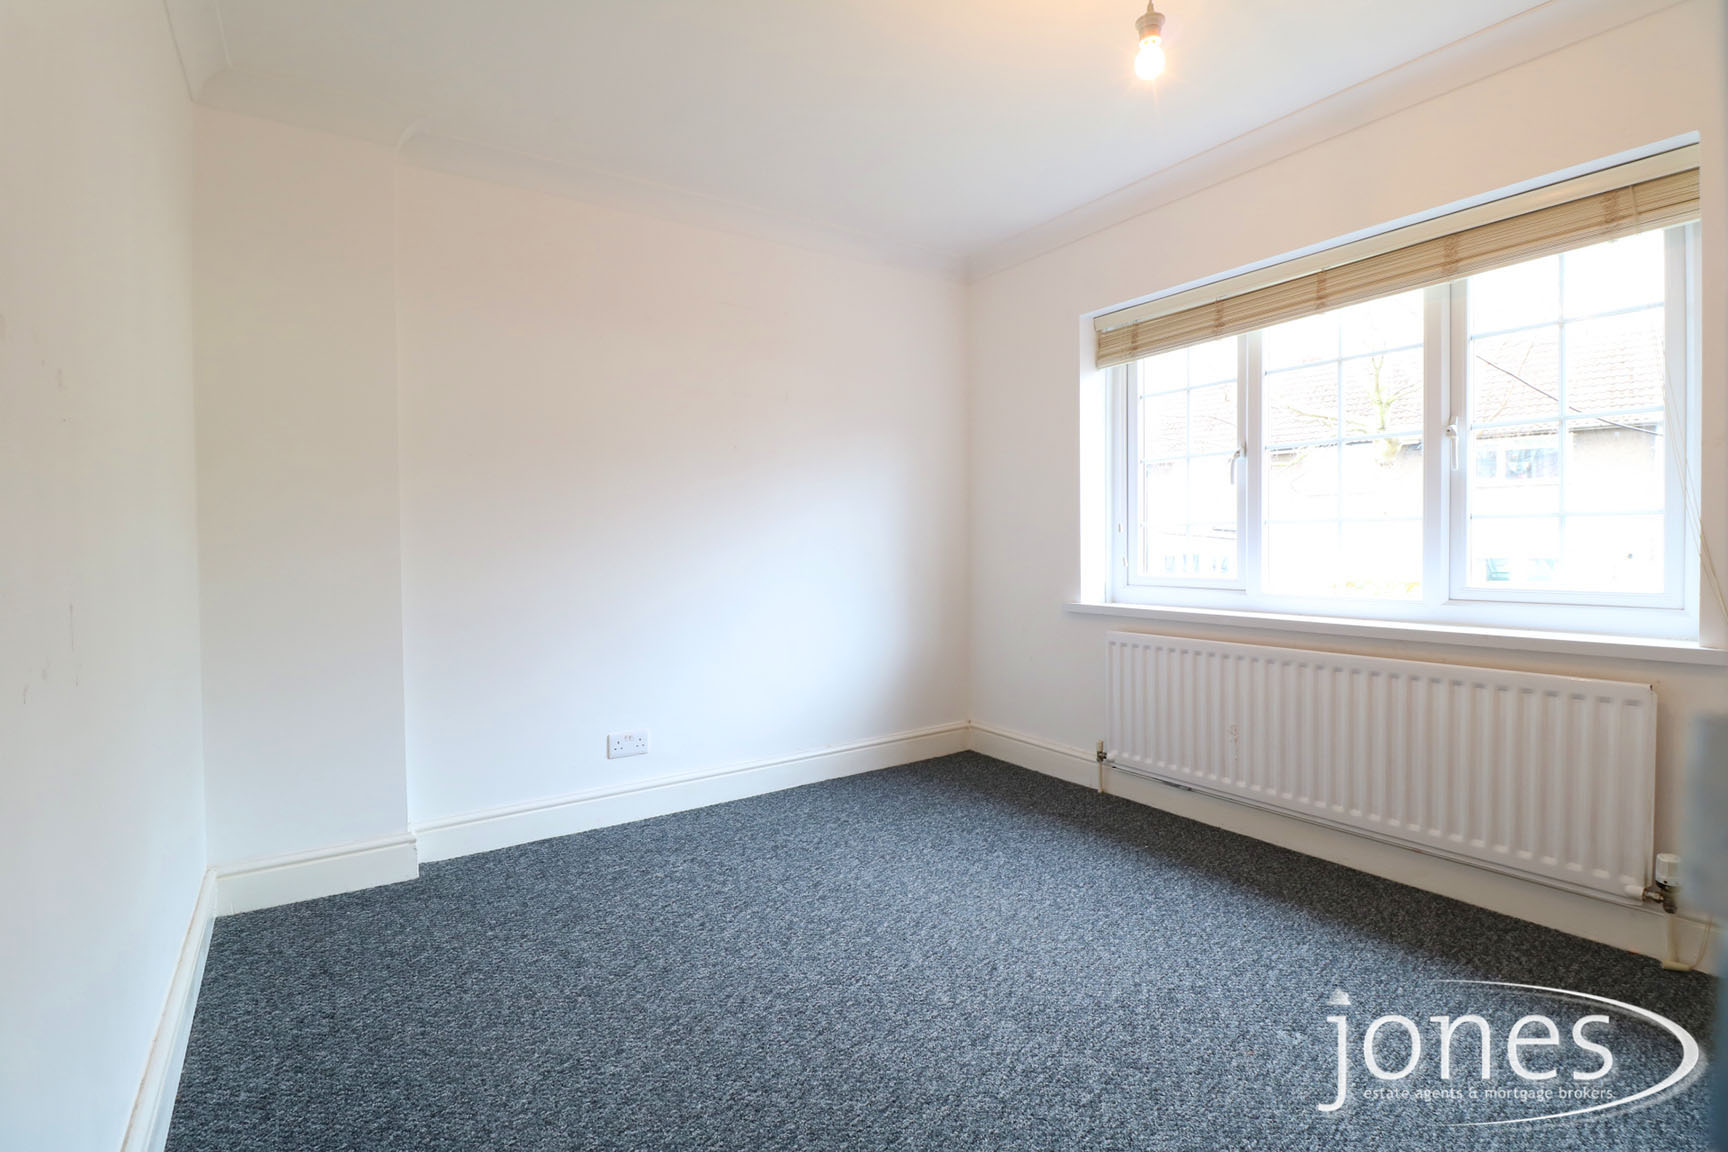 Home for Sale Let - Photo 07 Keats Road, Normanby, Middlesbrough, TS6 0RP